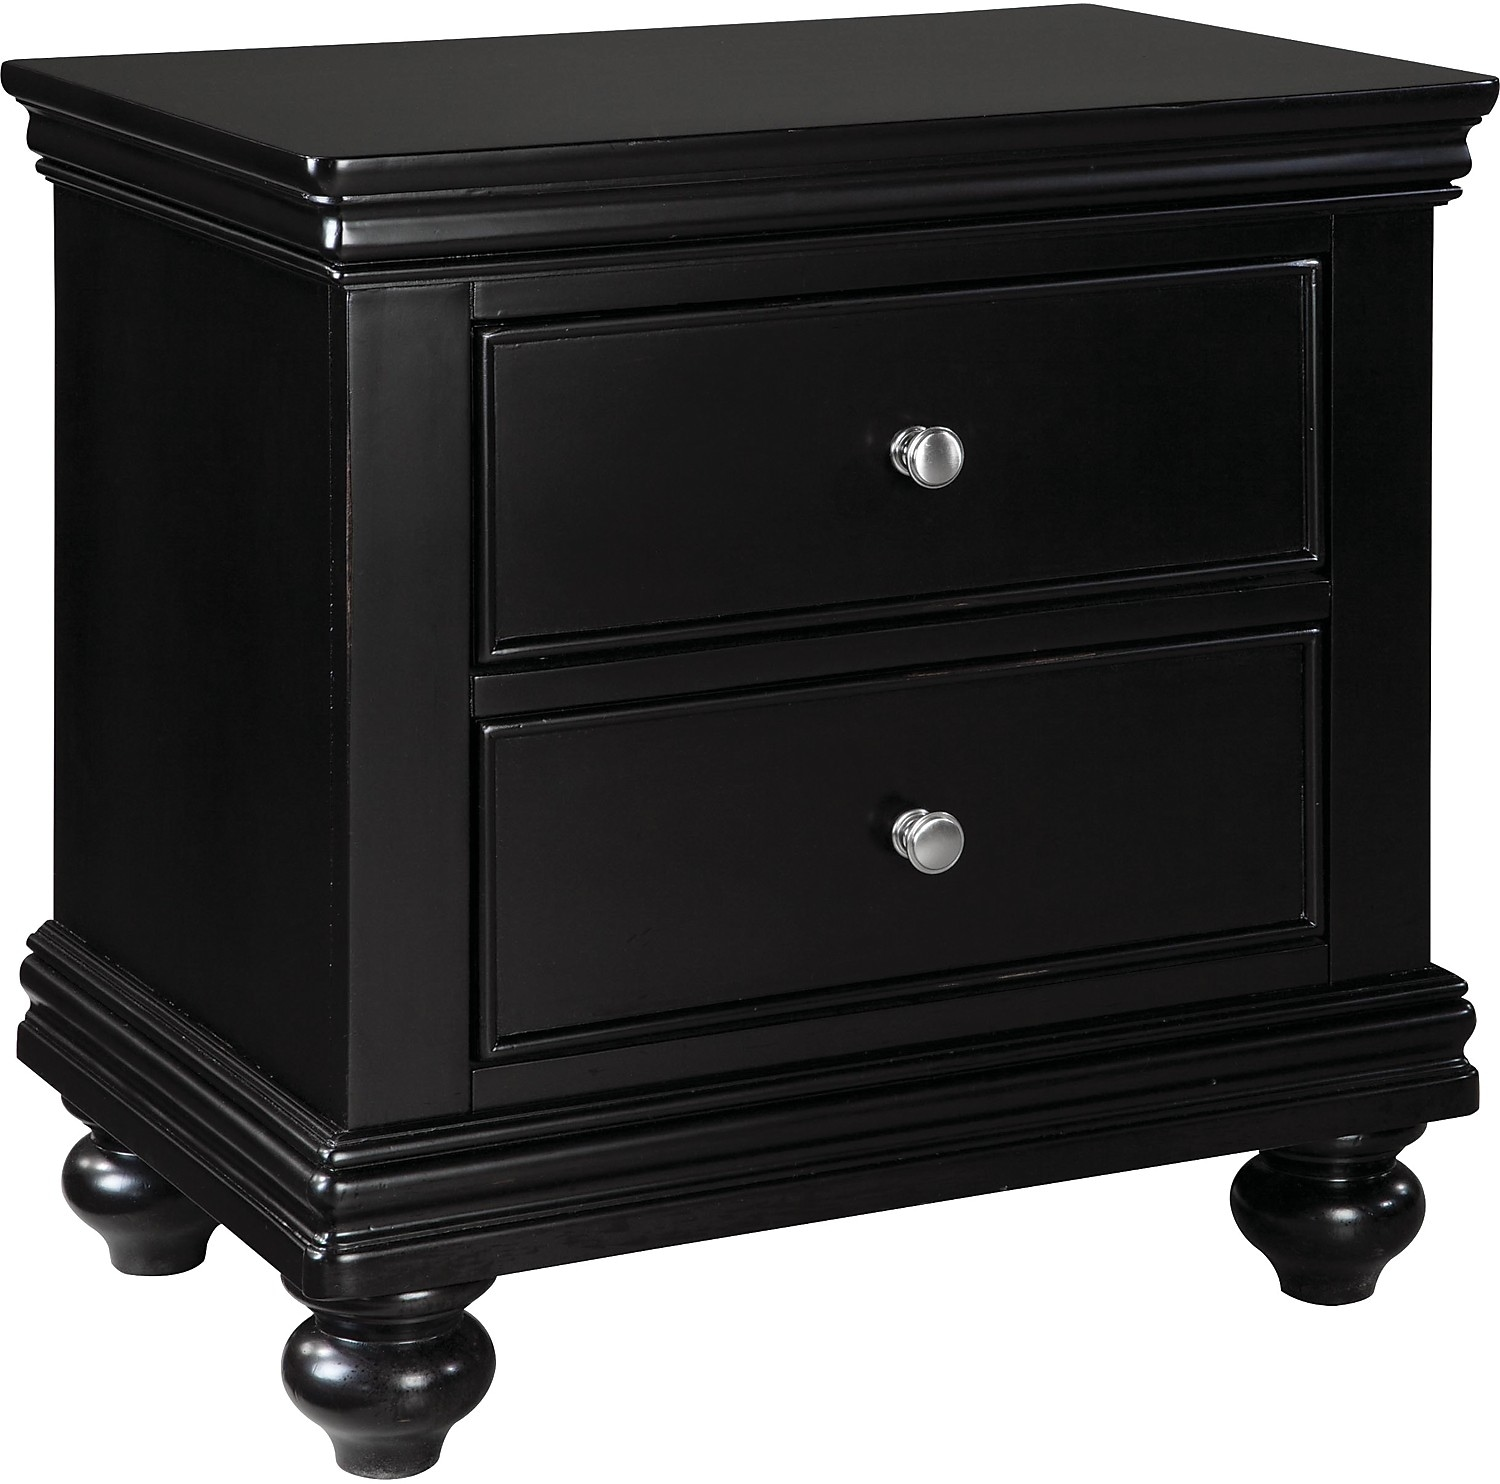 Bridgeport Nightstand – Black